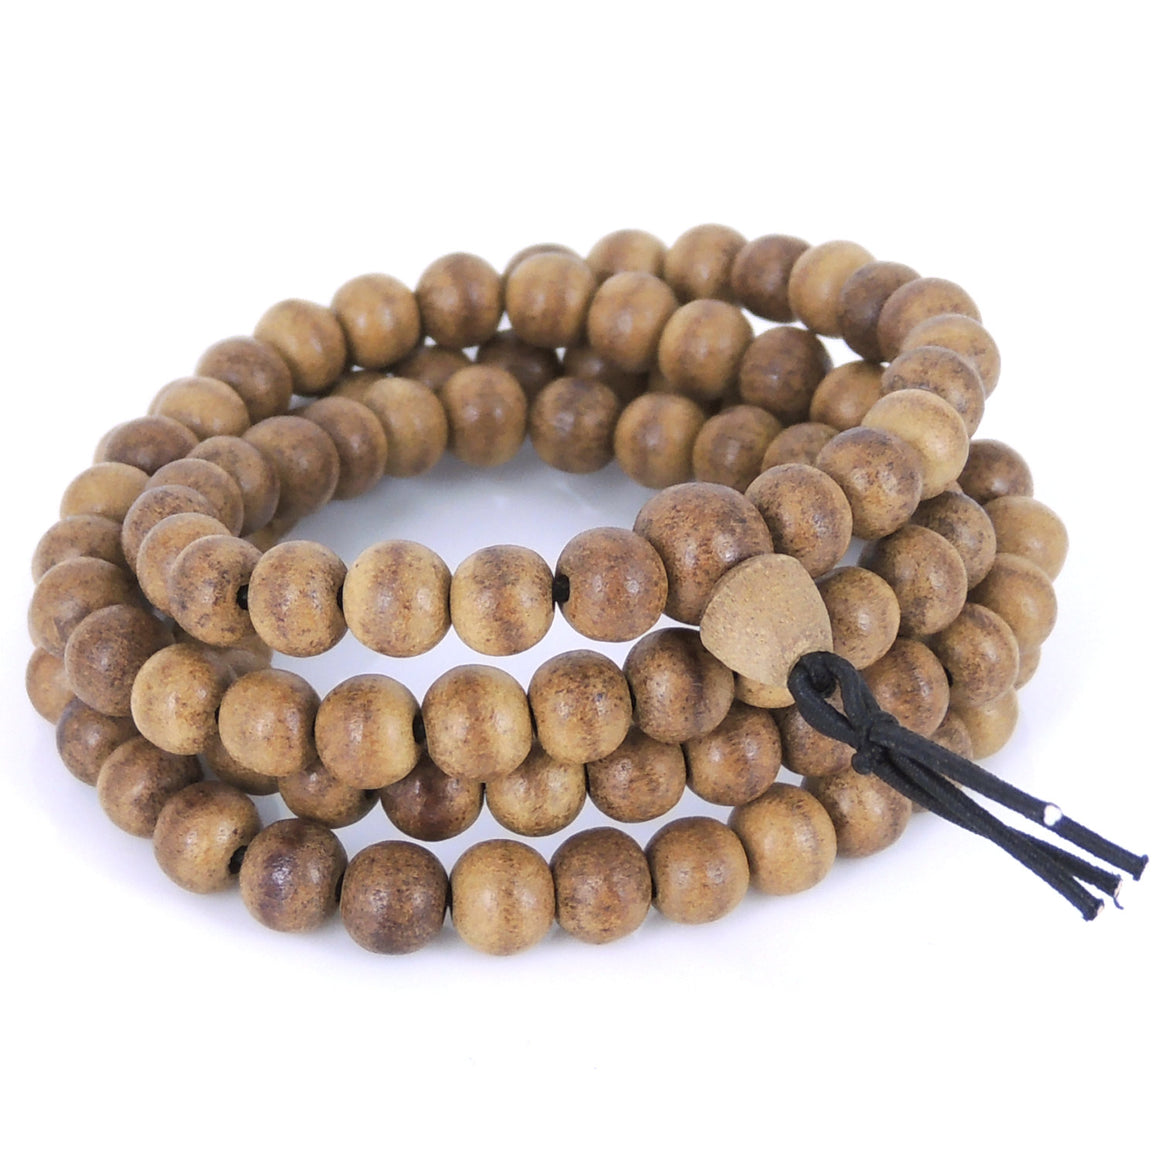 6.5mm Vietnamese Agarwood Bracelet/Necklace 108 Beads for Meditation - Gem & Silver AW003